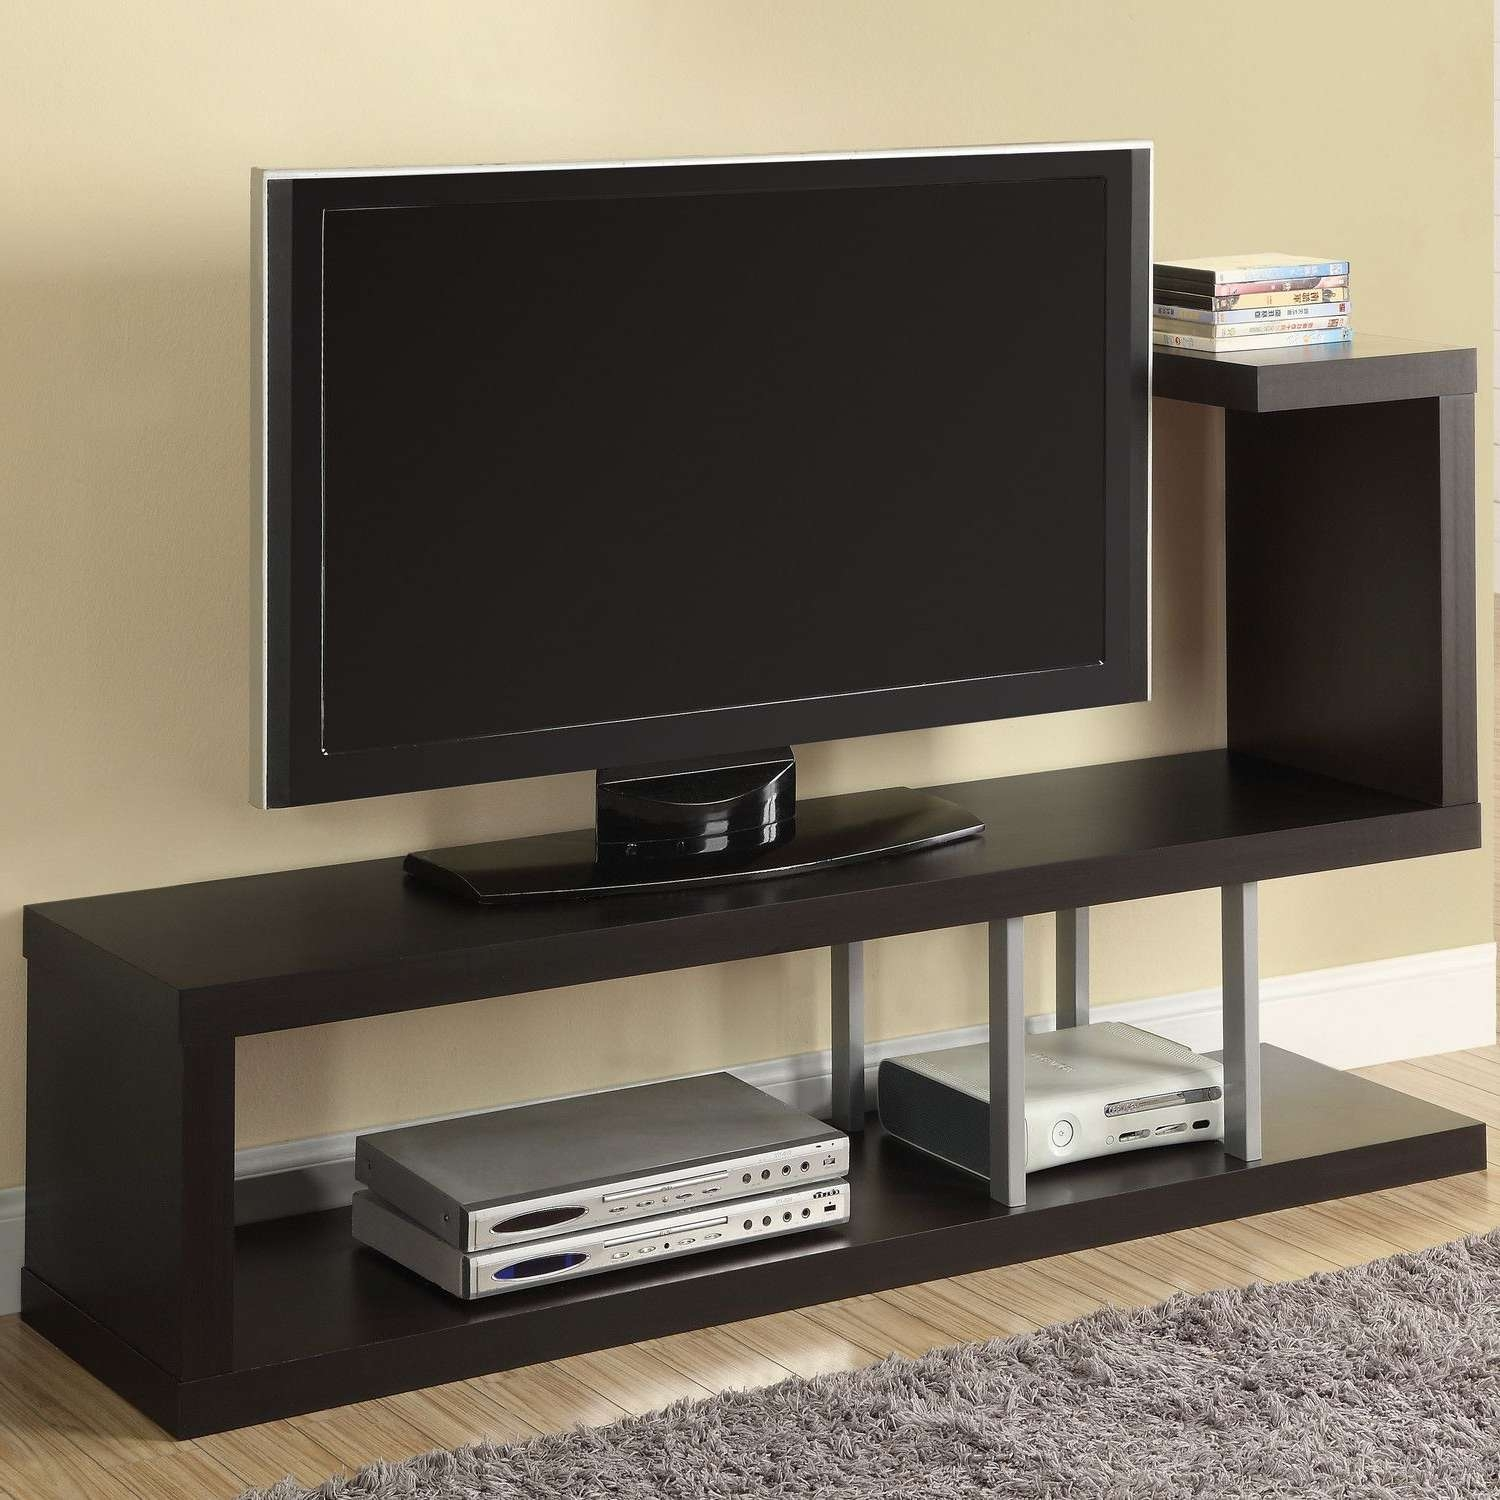 Living Room : Spartan Sofa Fire Place Tv Stands Best Color With Funky Tv Stands (View 2 of 15)